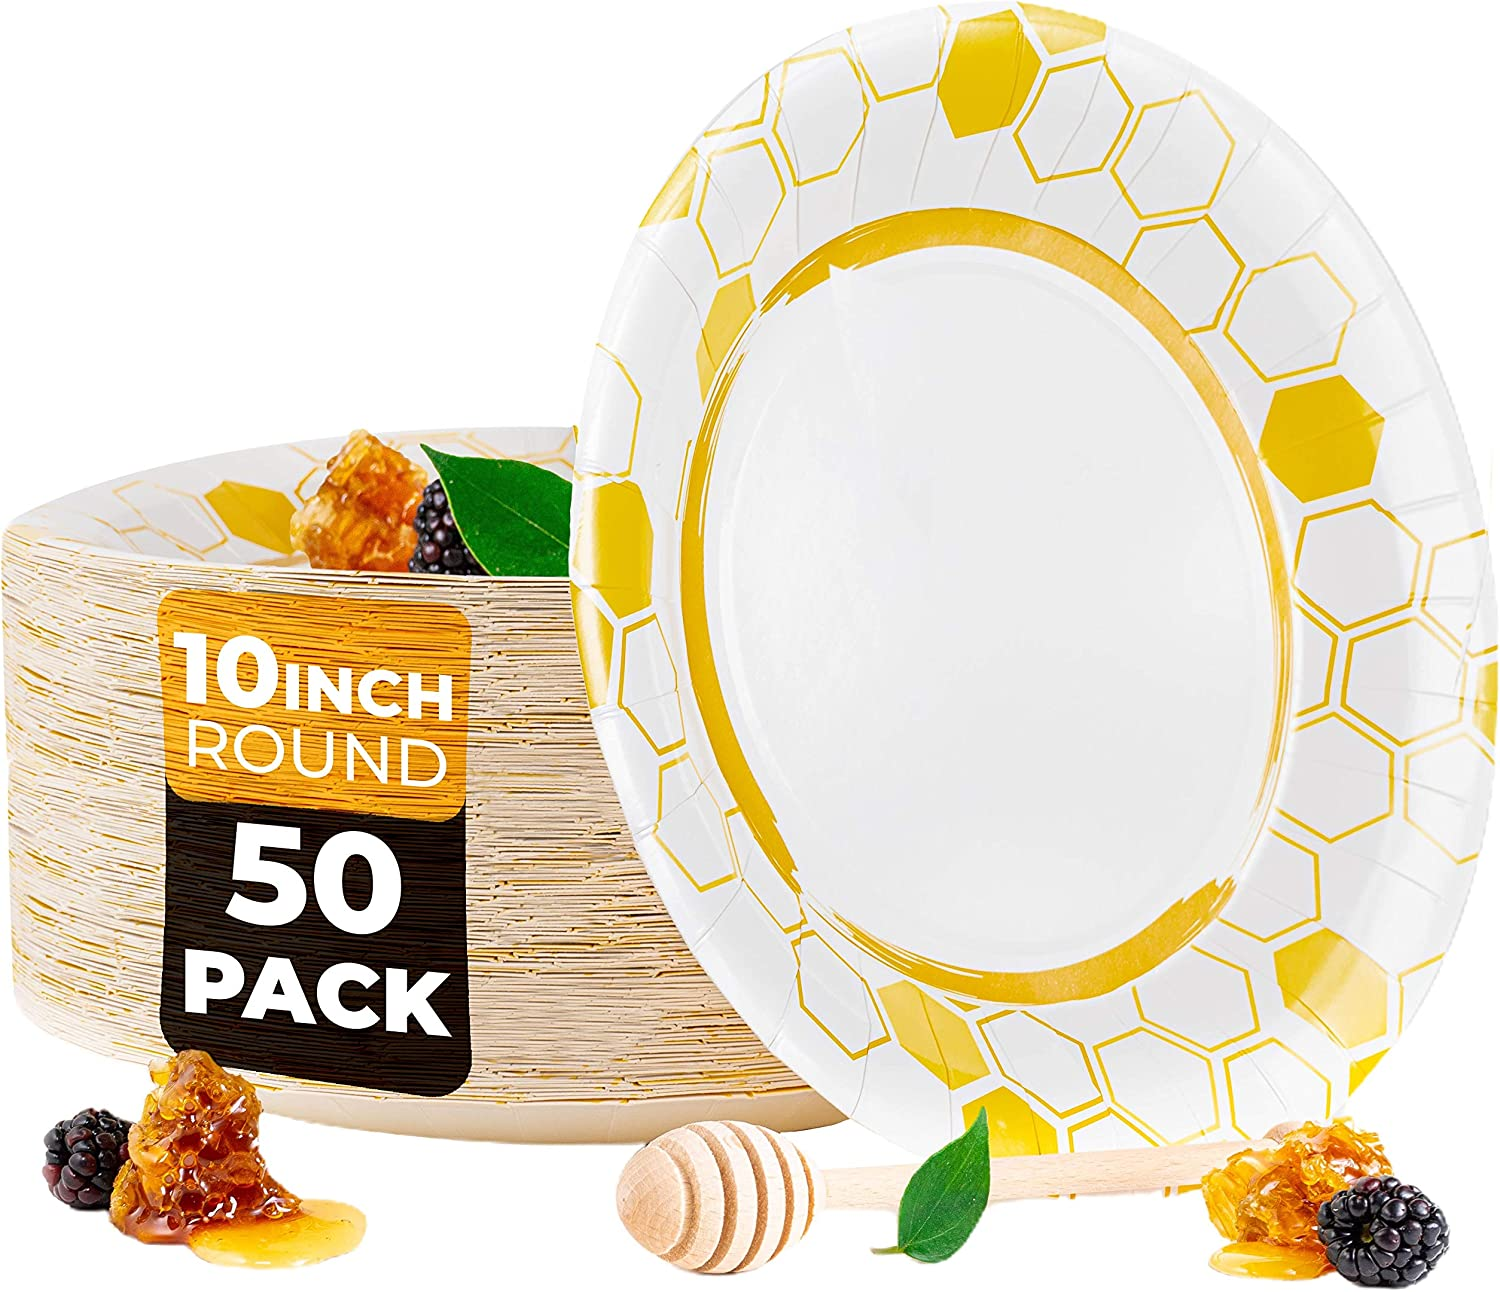 BEELEEVE [50-Pack] Disposable Paper Plates for Light Food - Eco-Friendly Food Grade   Coated   Leak, Soak, Cut Proof - Hot & Cold Food for Parties, Events, Everyday - Sustainable – Compostable(10 in)